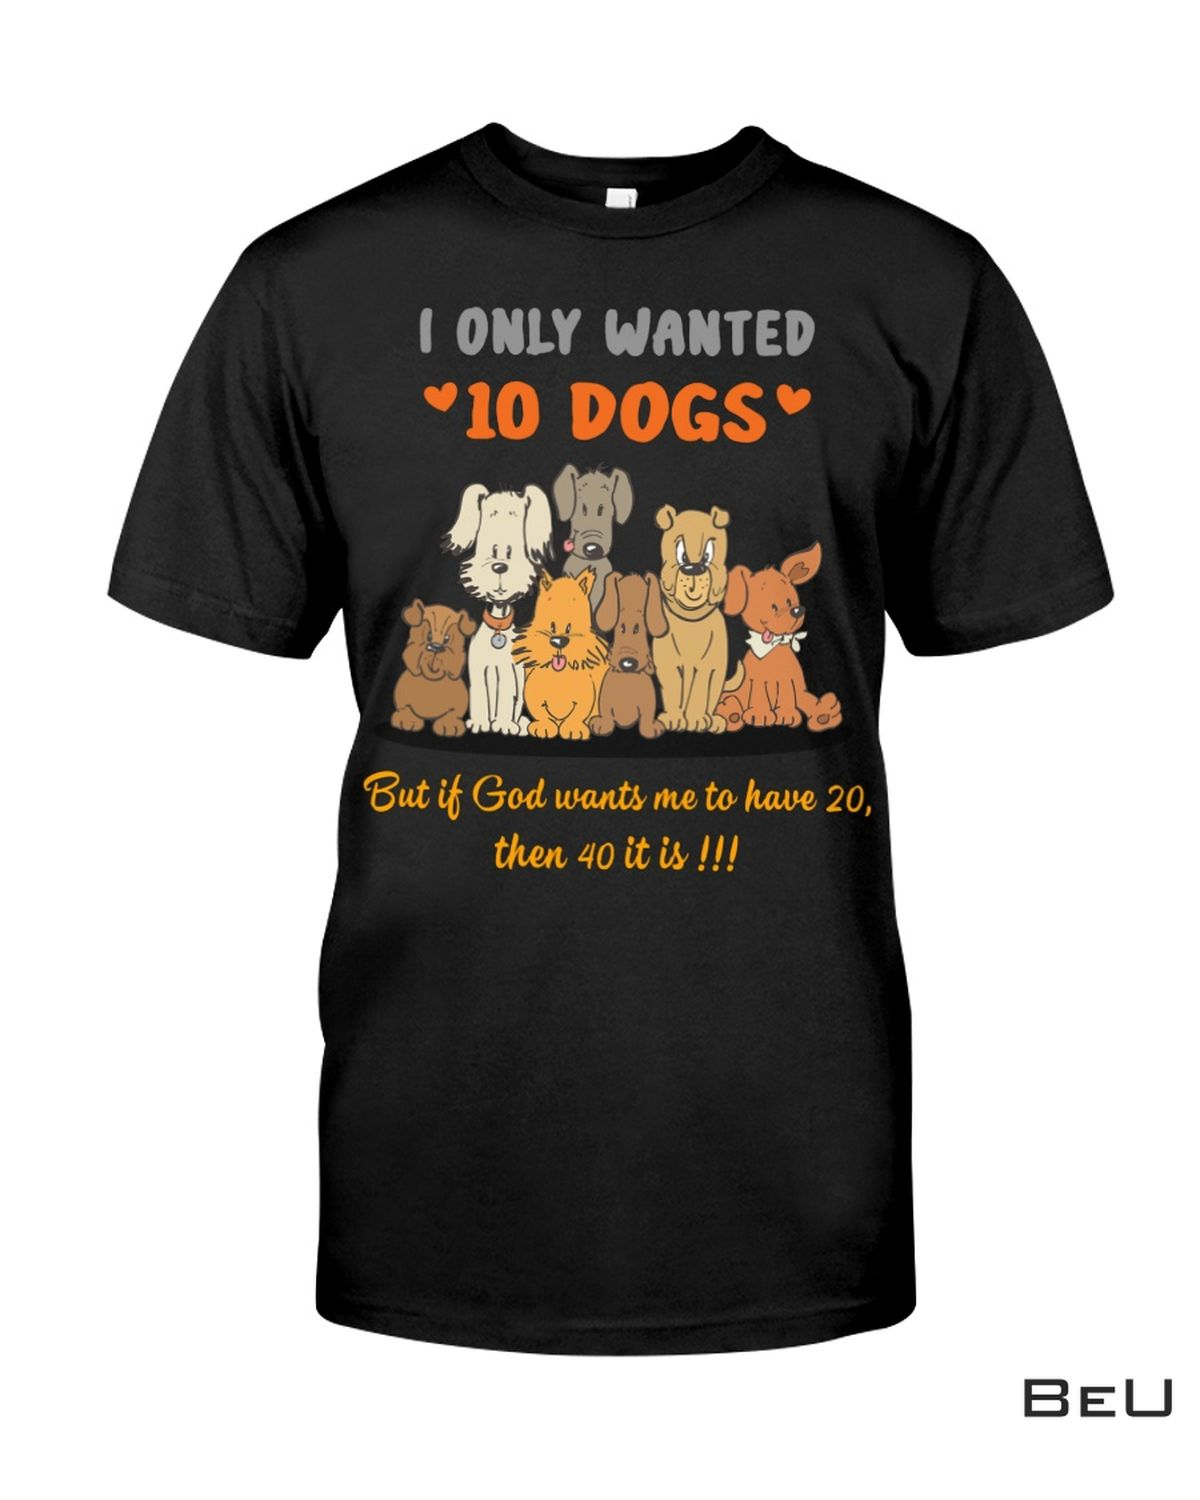 I Only Wanted 10 Dogs But If God Wants Me To Have 20 Then 40 It Is Shirt, hoodie, tank top